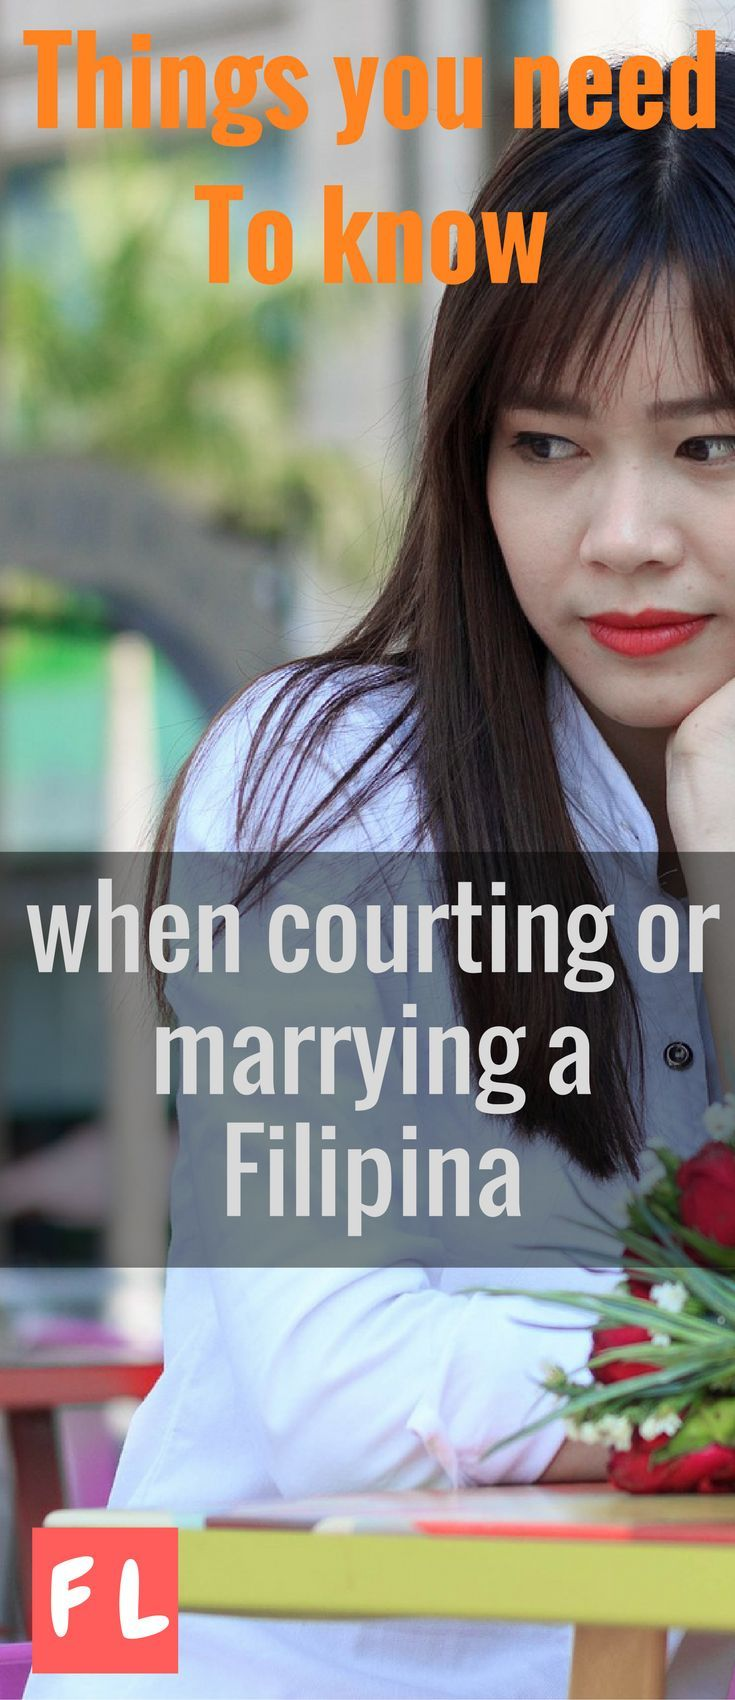 Things you need to know when your courting or marrying a Filipina